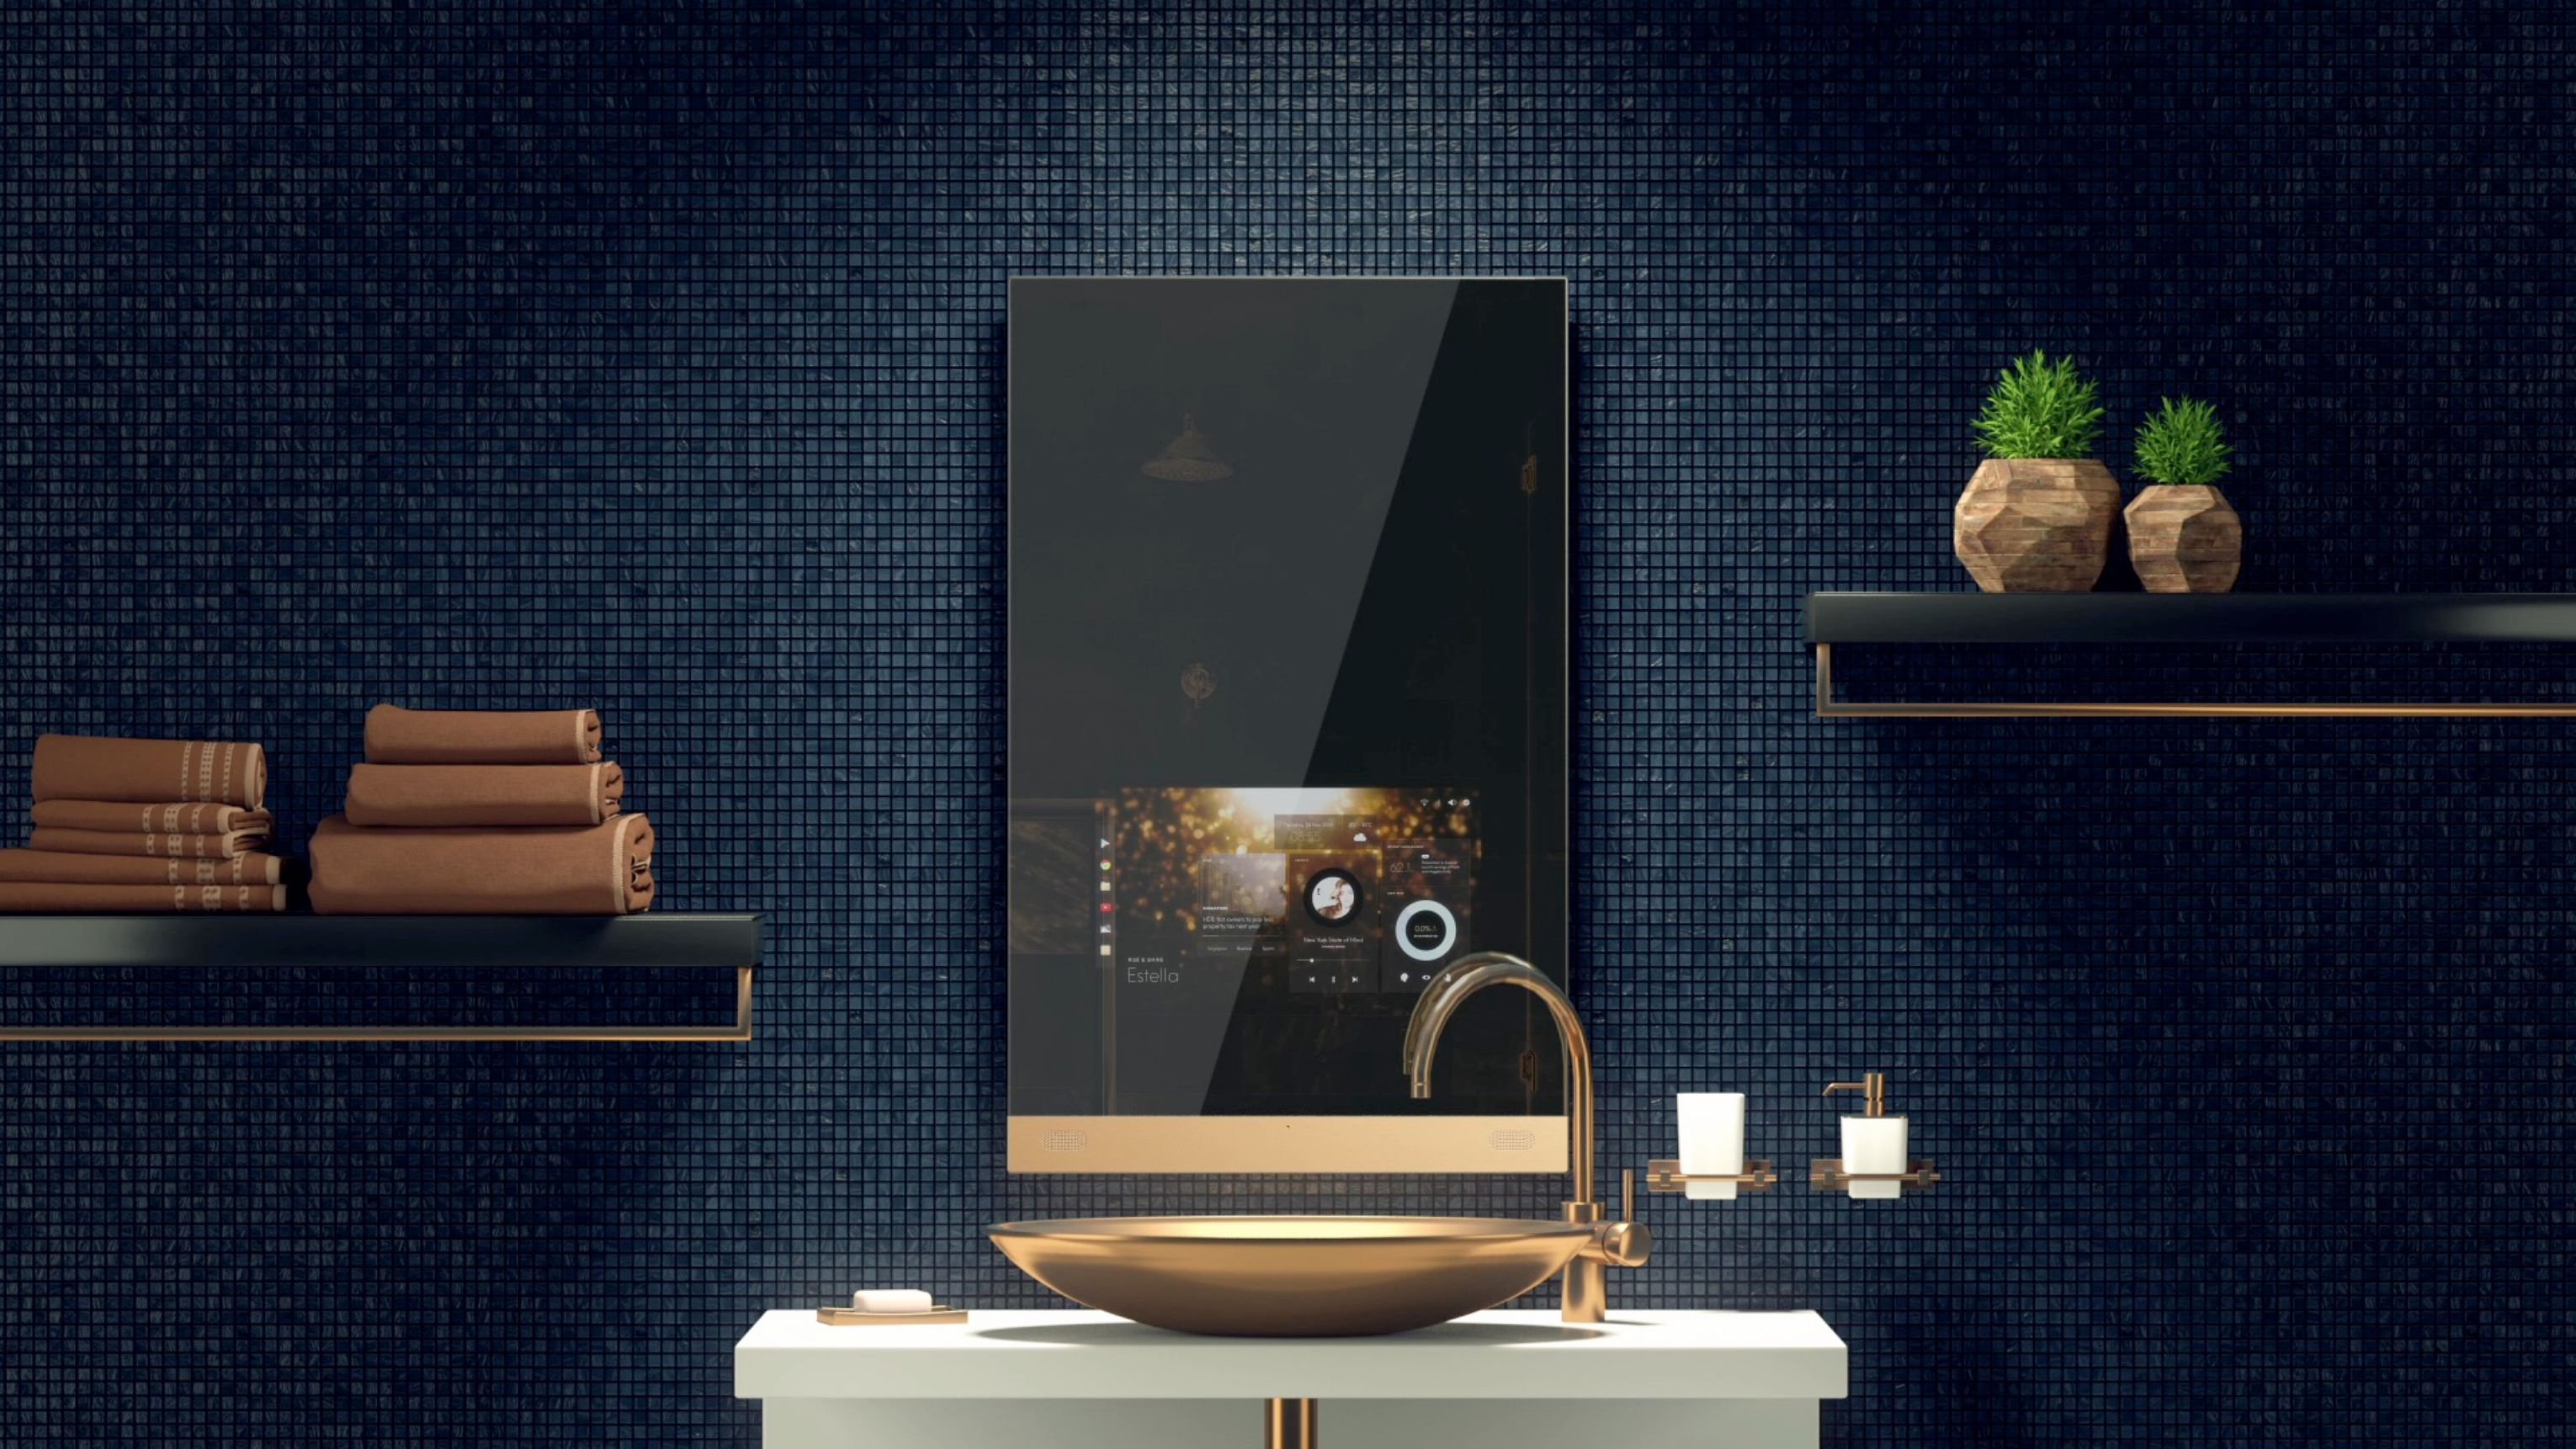 The world's first luxury smart mirror is here to streamline your mornings